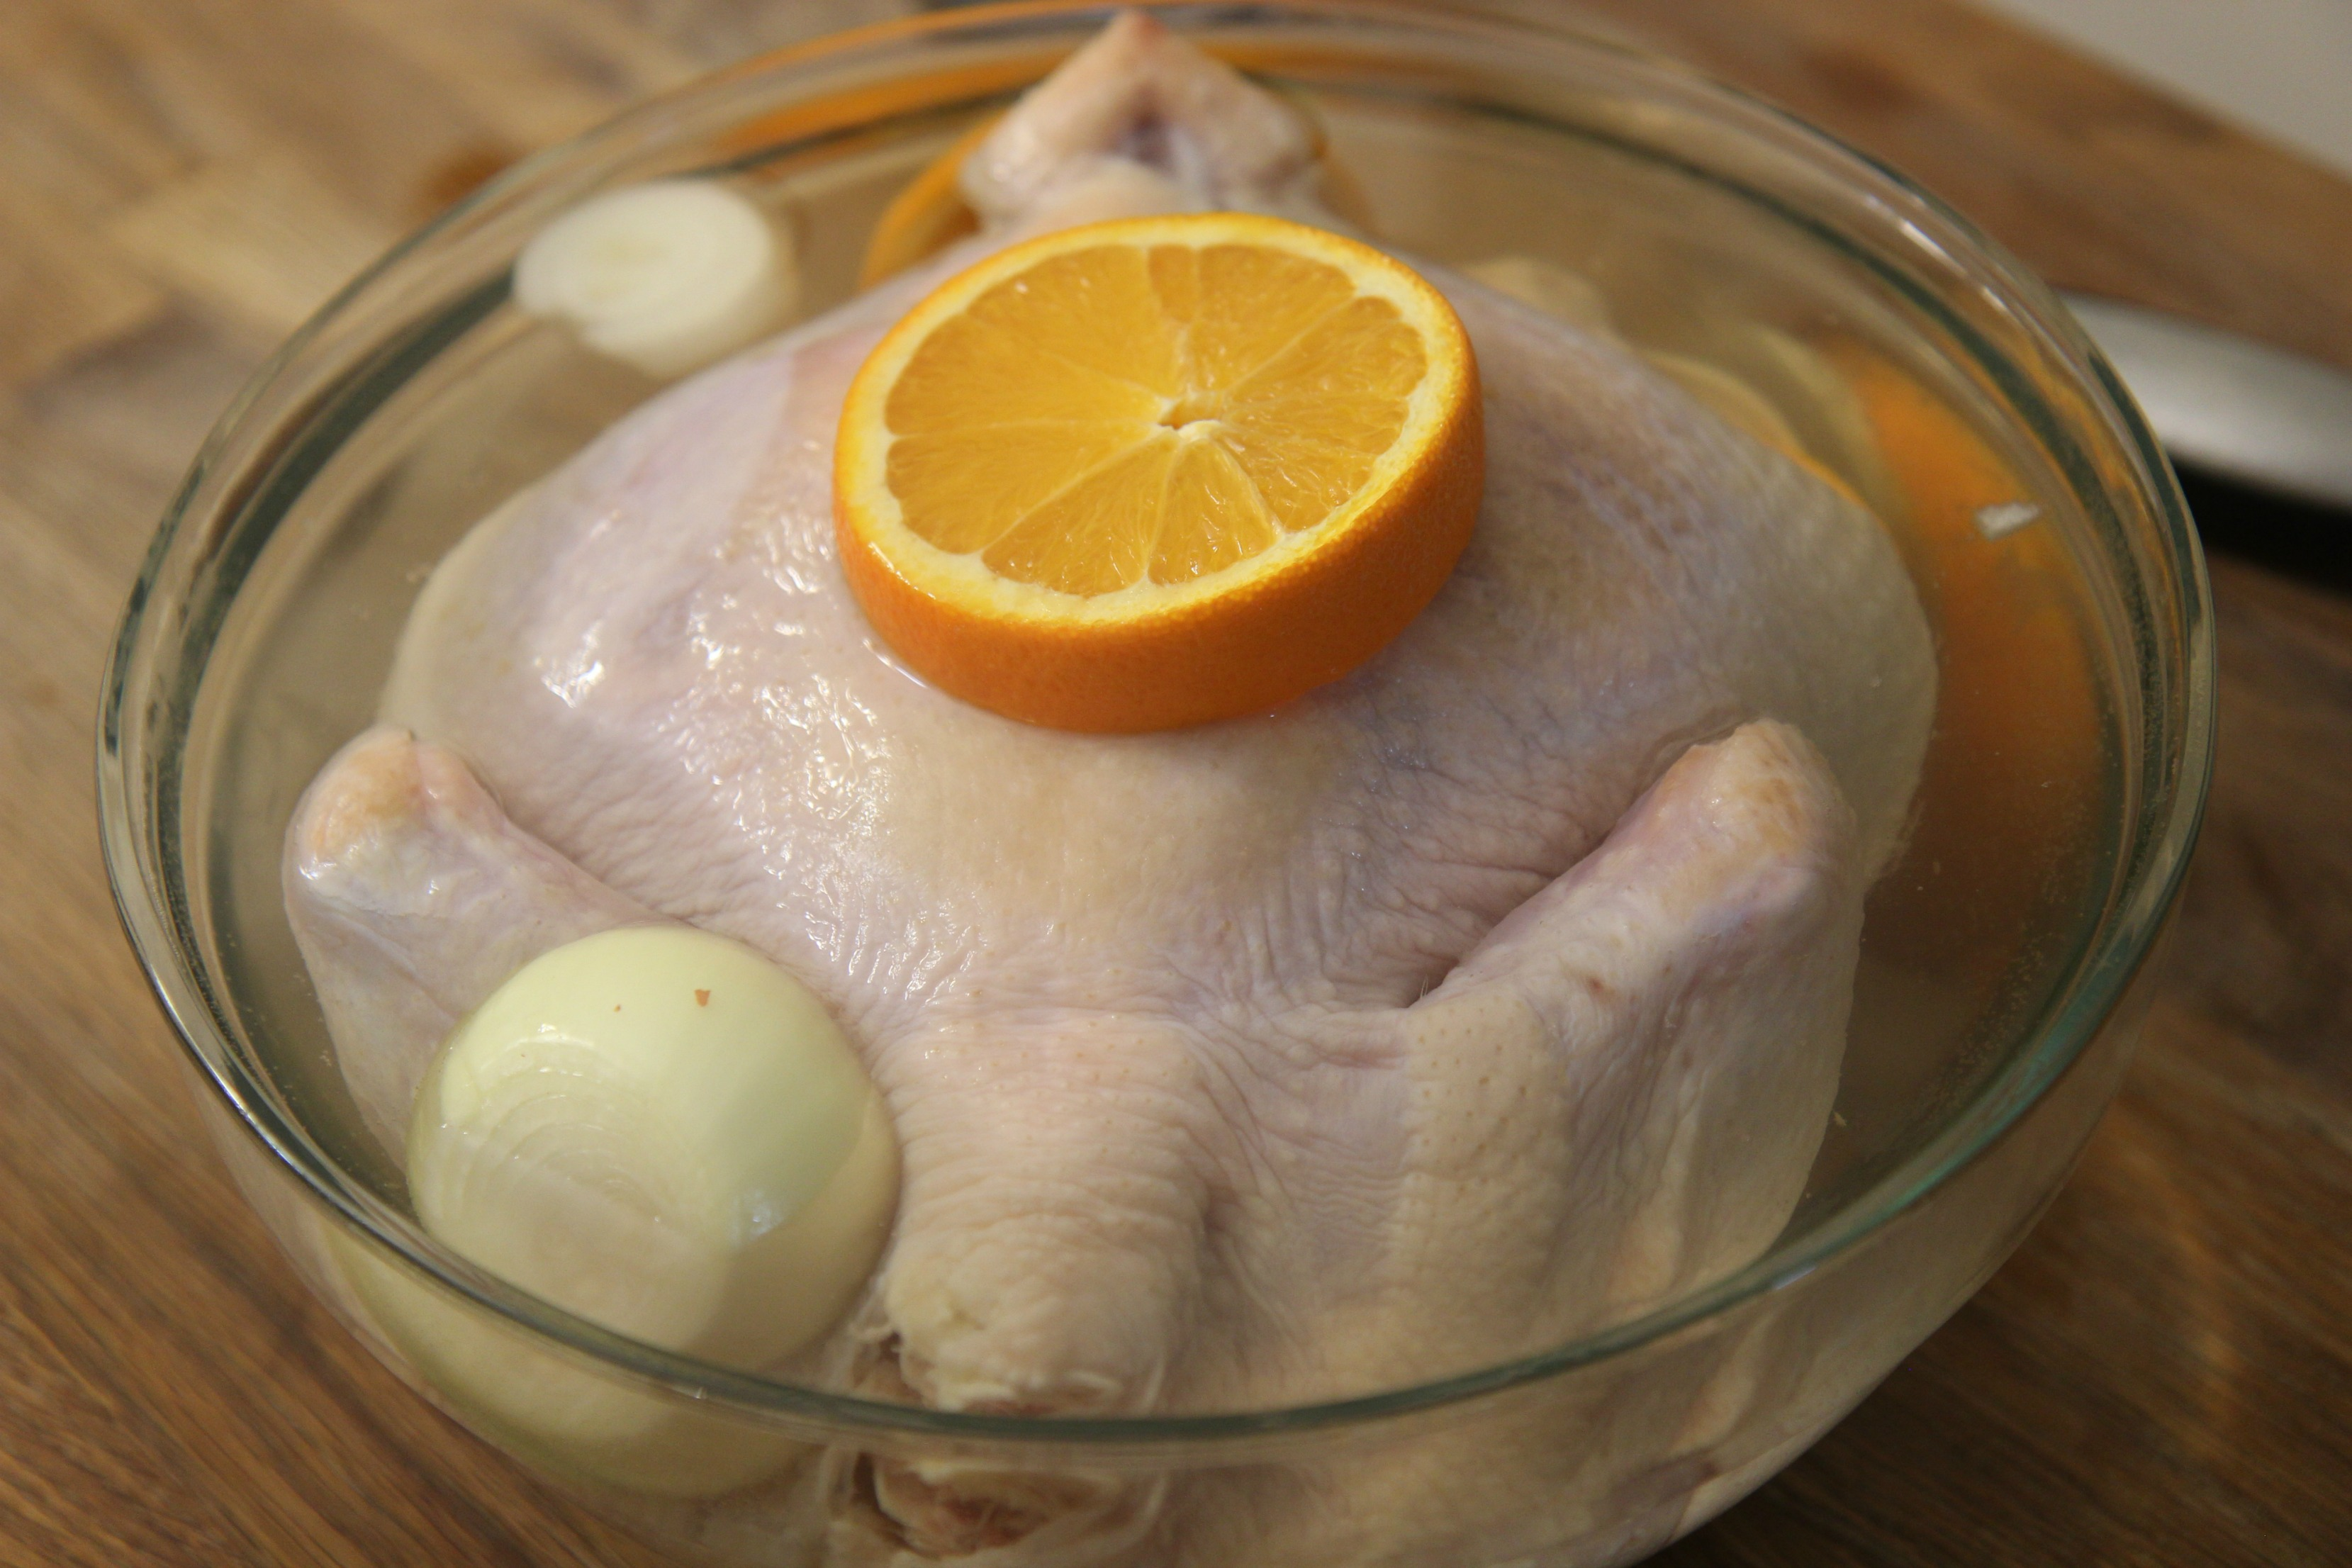 Brine the chicken in a mixture of water, salt and sugar with garlic, onions and oranges